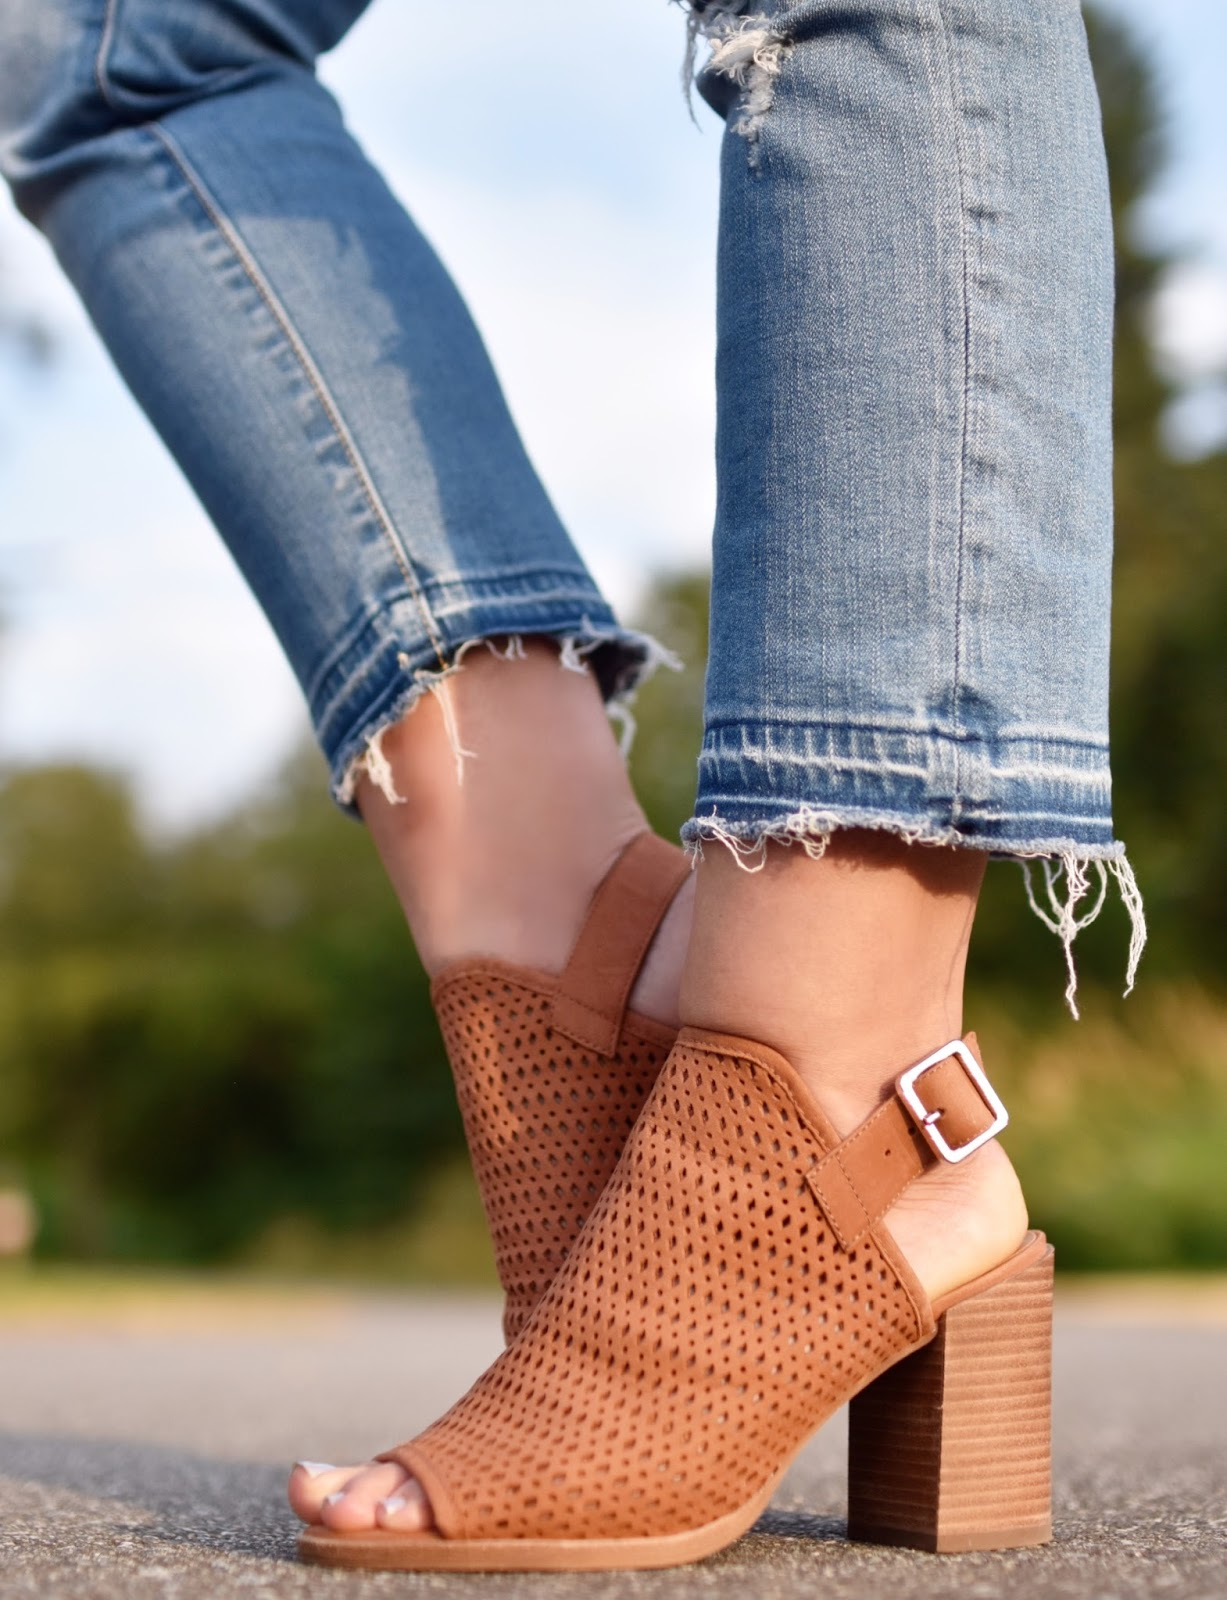 Monika Faulkner personal style inspiration - distressed cropped jeans, Steve Madden cut-out booties